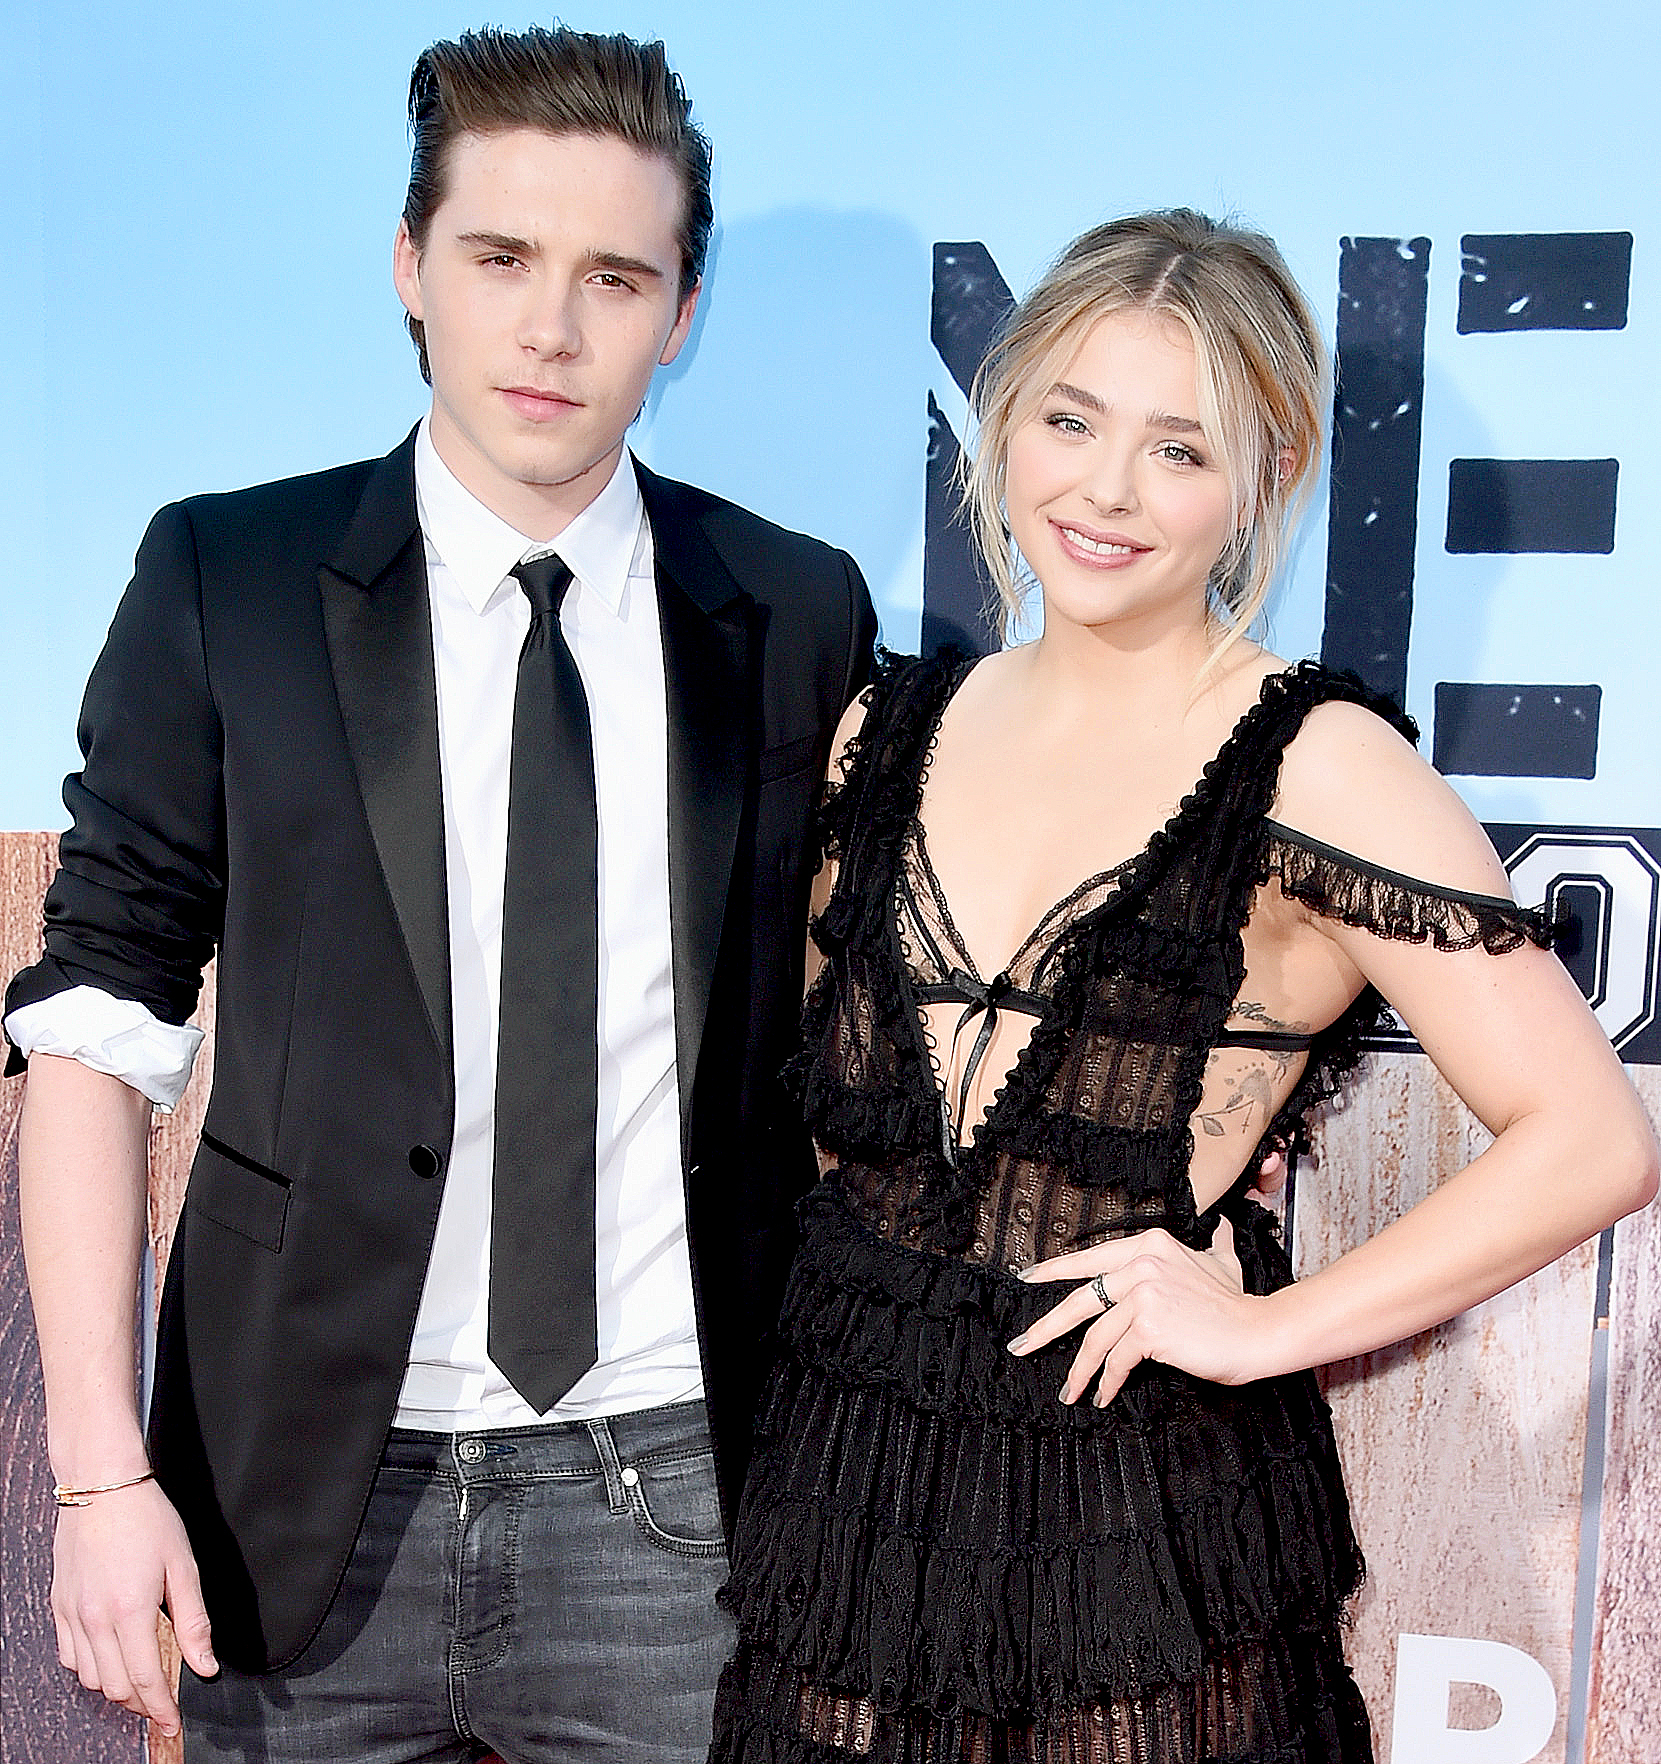 Brooklyn Beckham and Chloë Grace Moretz attend the premiere of Universal Pictures'